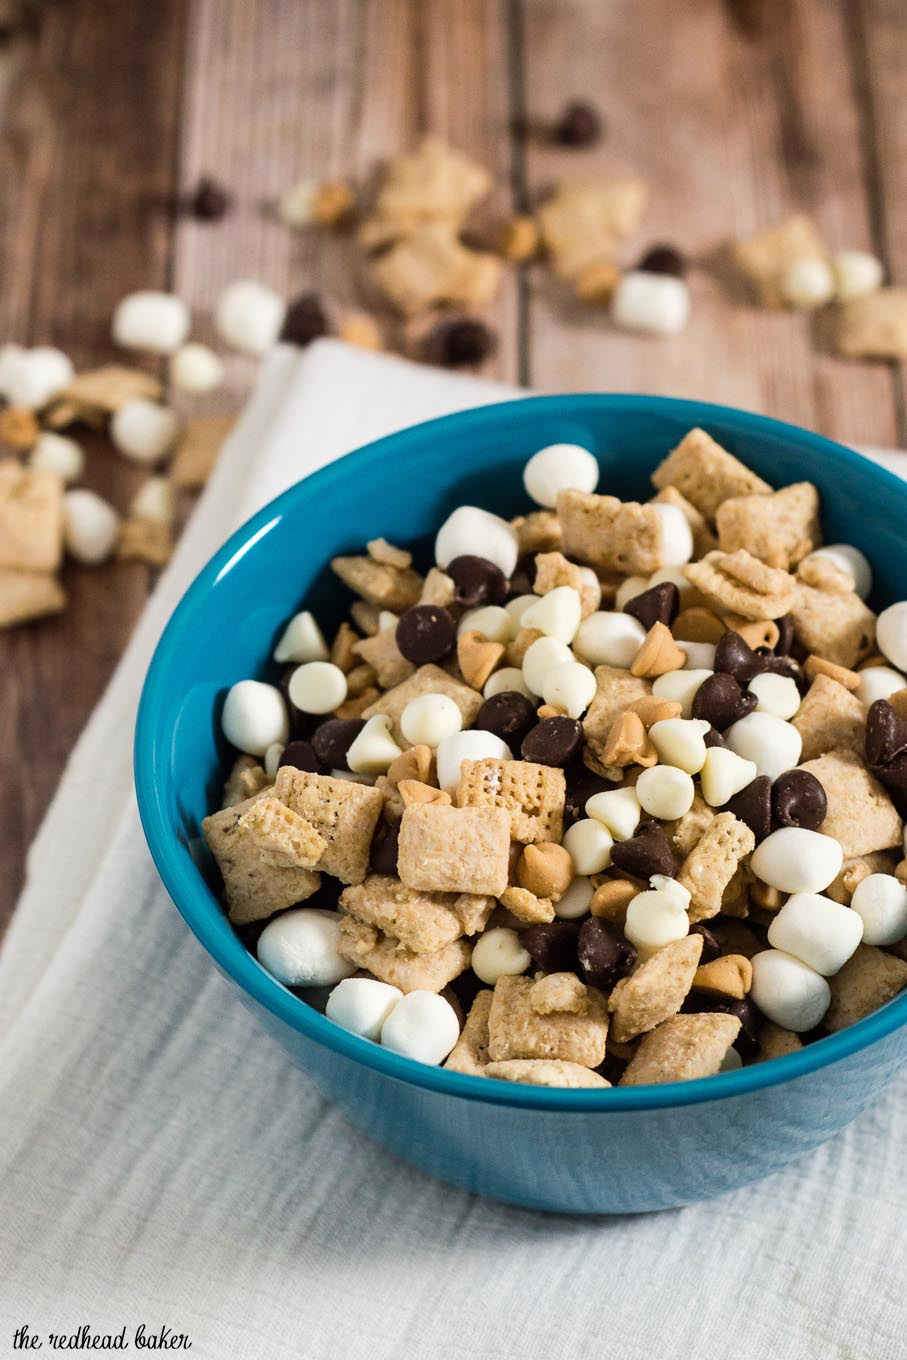 Avalanche Bark Muddy Buddies combine Chex cereal, peanut butter, white chocolate, semisweet chocolate and marshmallows in an addictive snack!